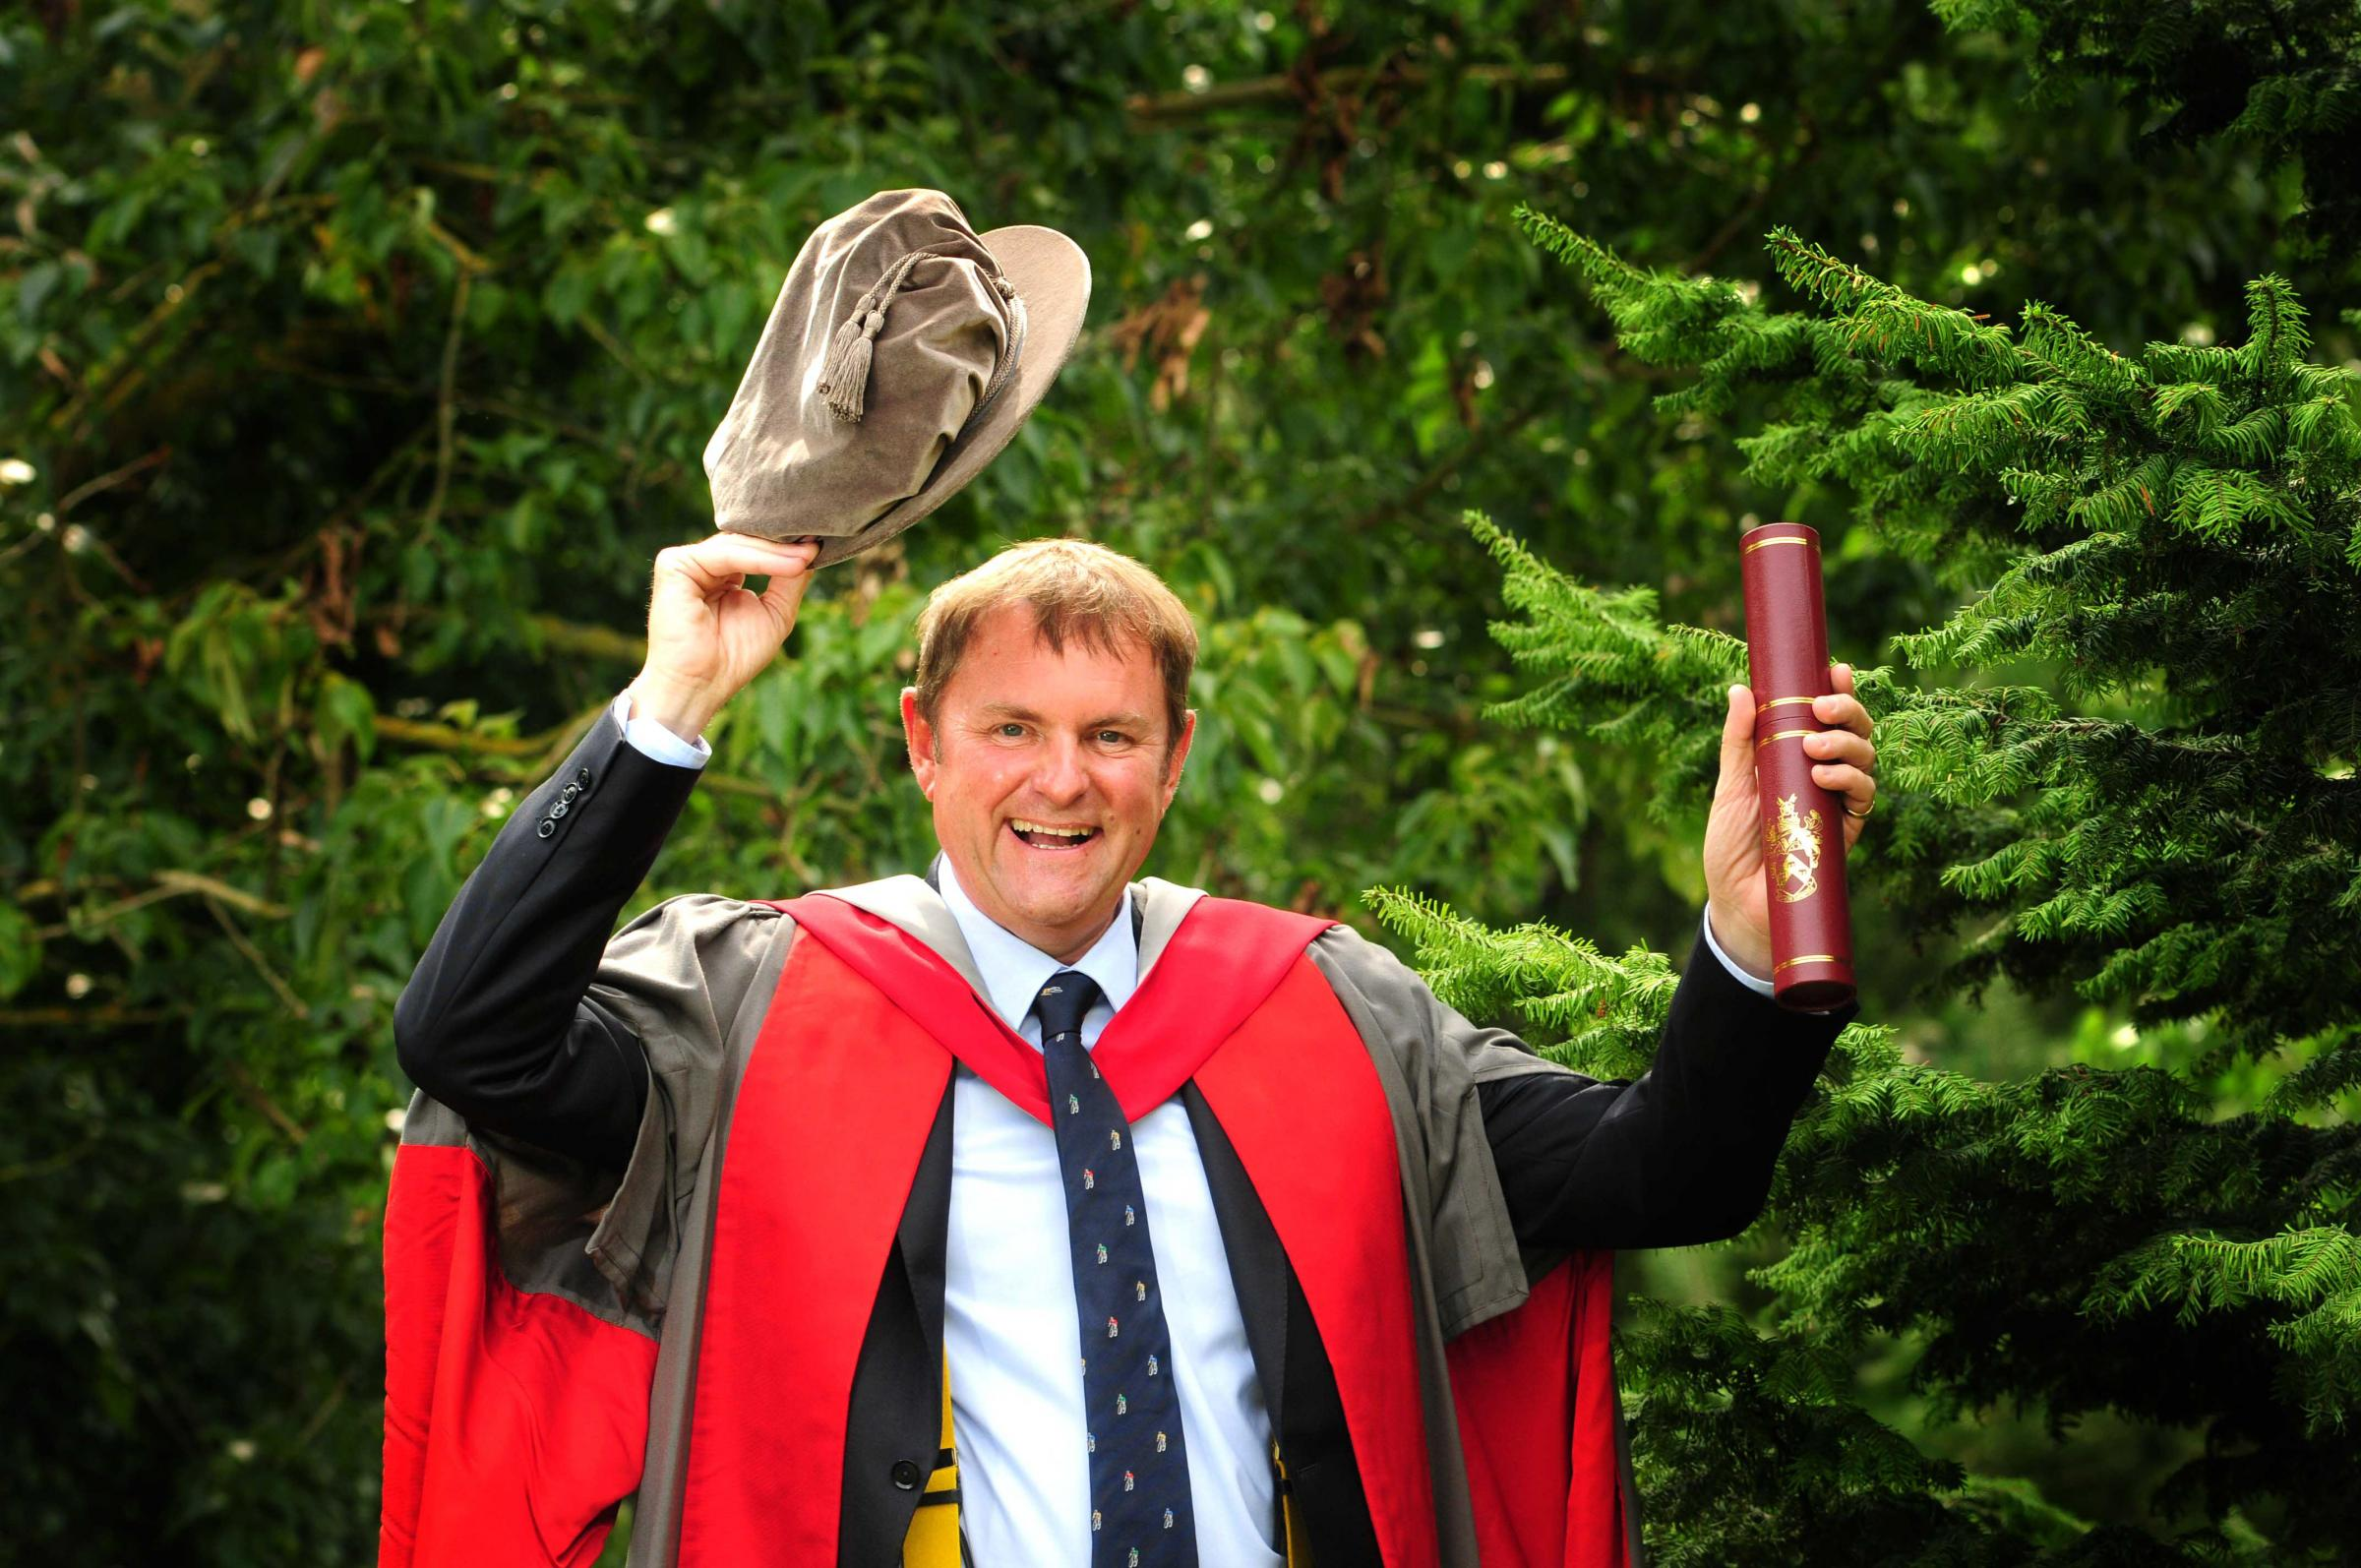 TOP HONOURS: Gary Verity pictured at The University of York after collecting his honorary degree. Pictur